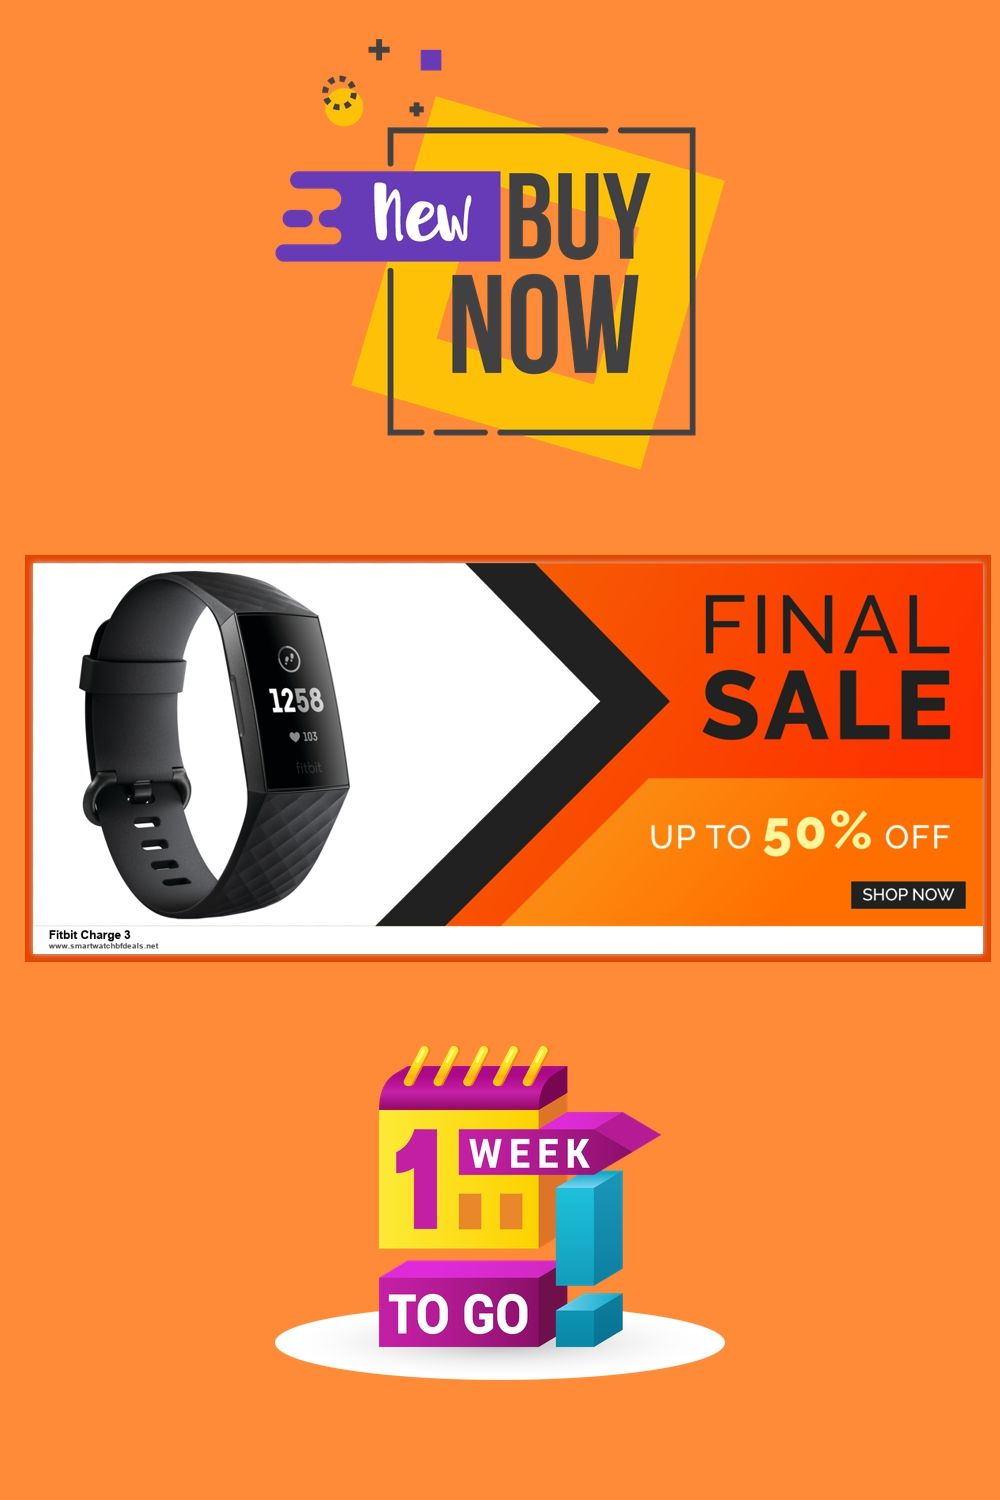 10 Best Black Friday Deals On Fitbit Charge 3 2020 In 2020 Fitbit Charge Fitbit Black Friday